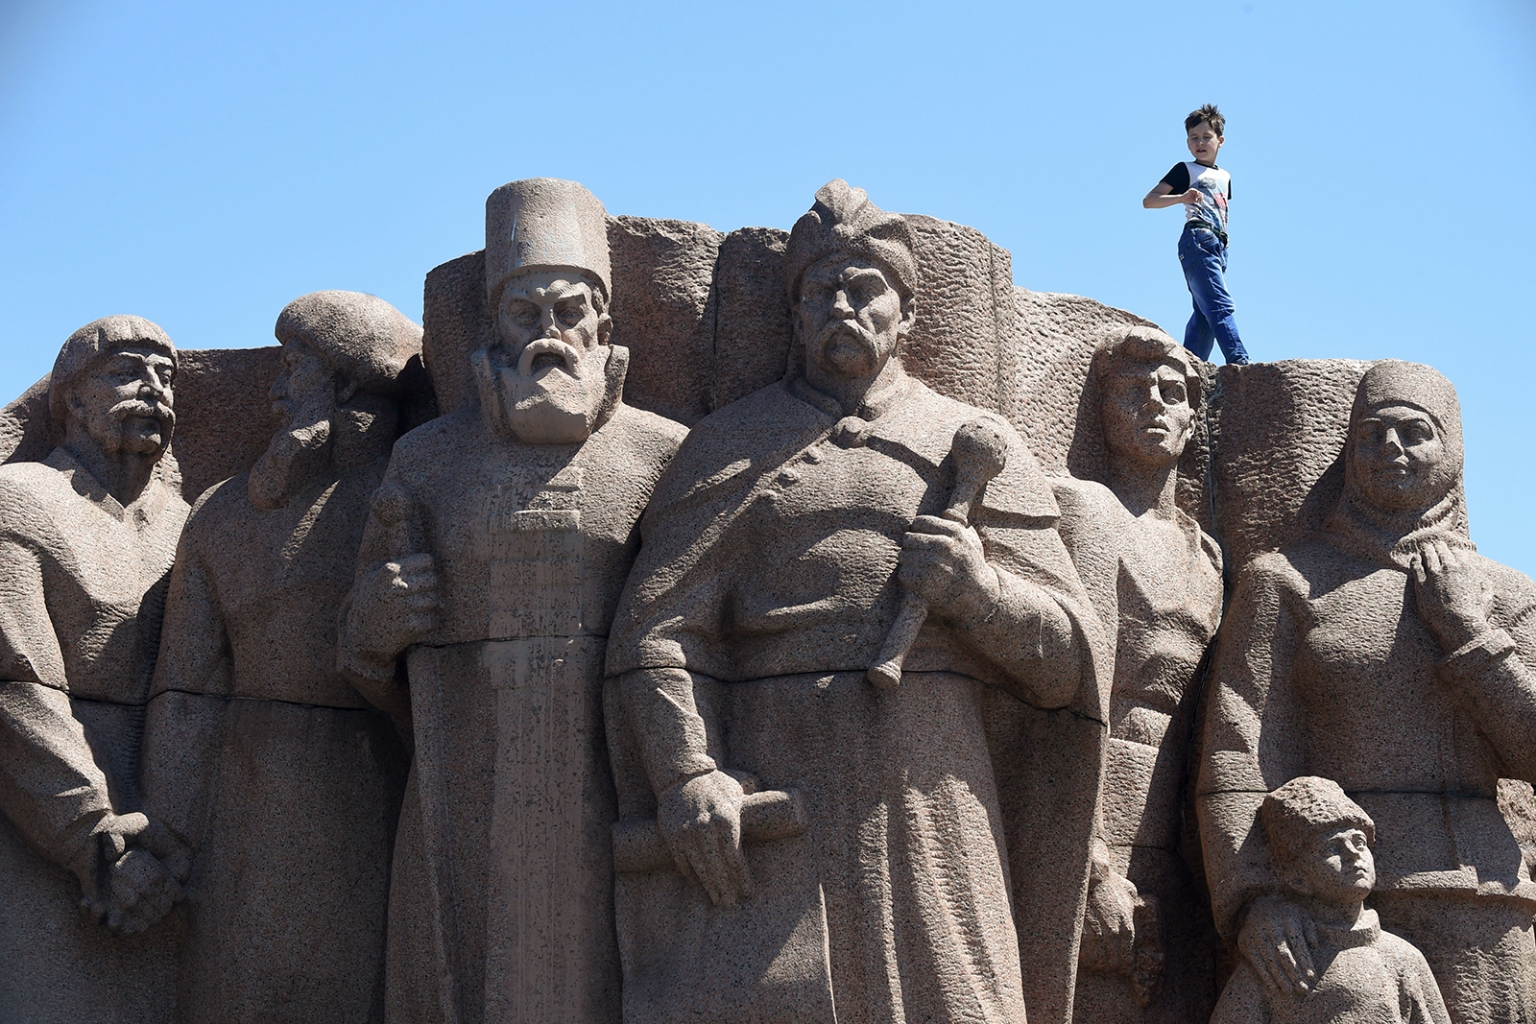 A boy walks on the top of a Soviet-era monument for Ukraine and Russia union in Kiev on July 1. SERGEI SUPINSKY/AFP/Getty Images